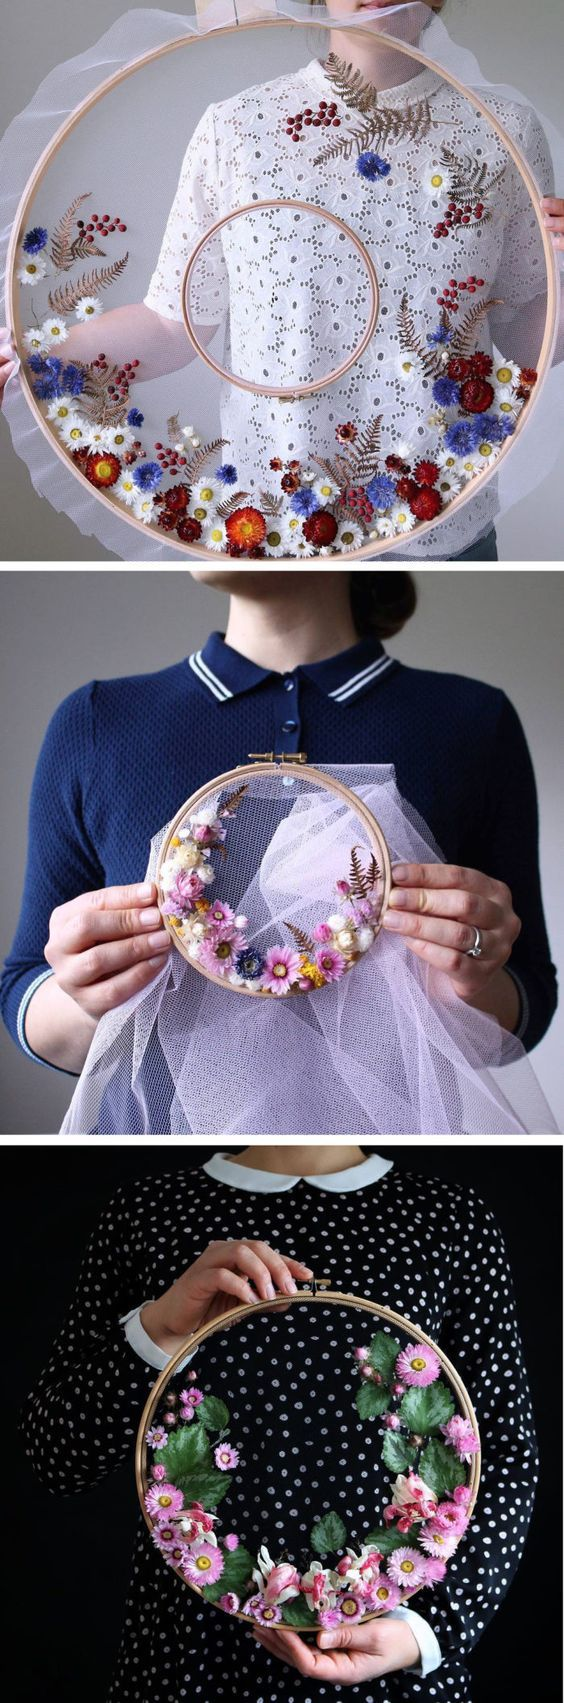 Exquisite Floral Wreath Weavings are a Beautiful Frame to View the World